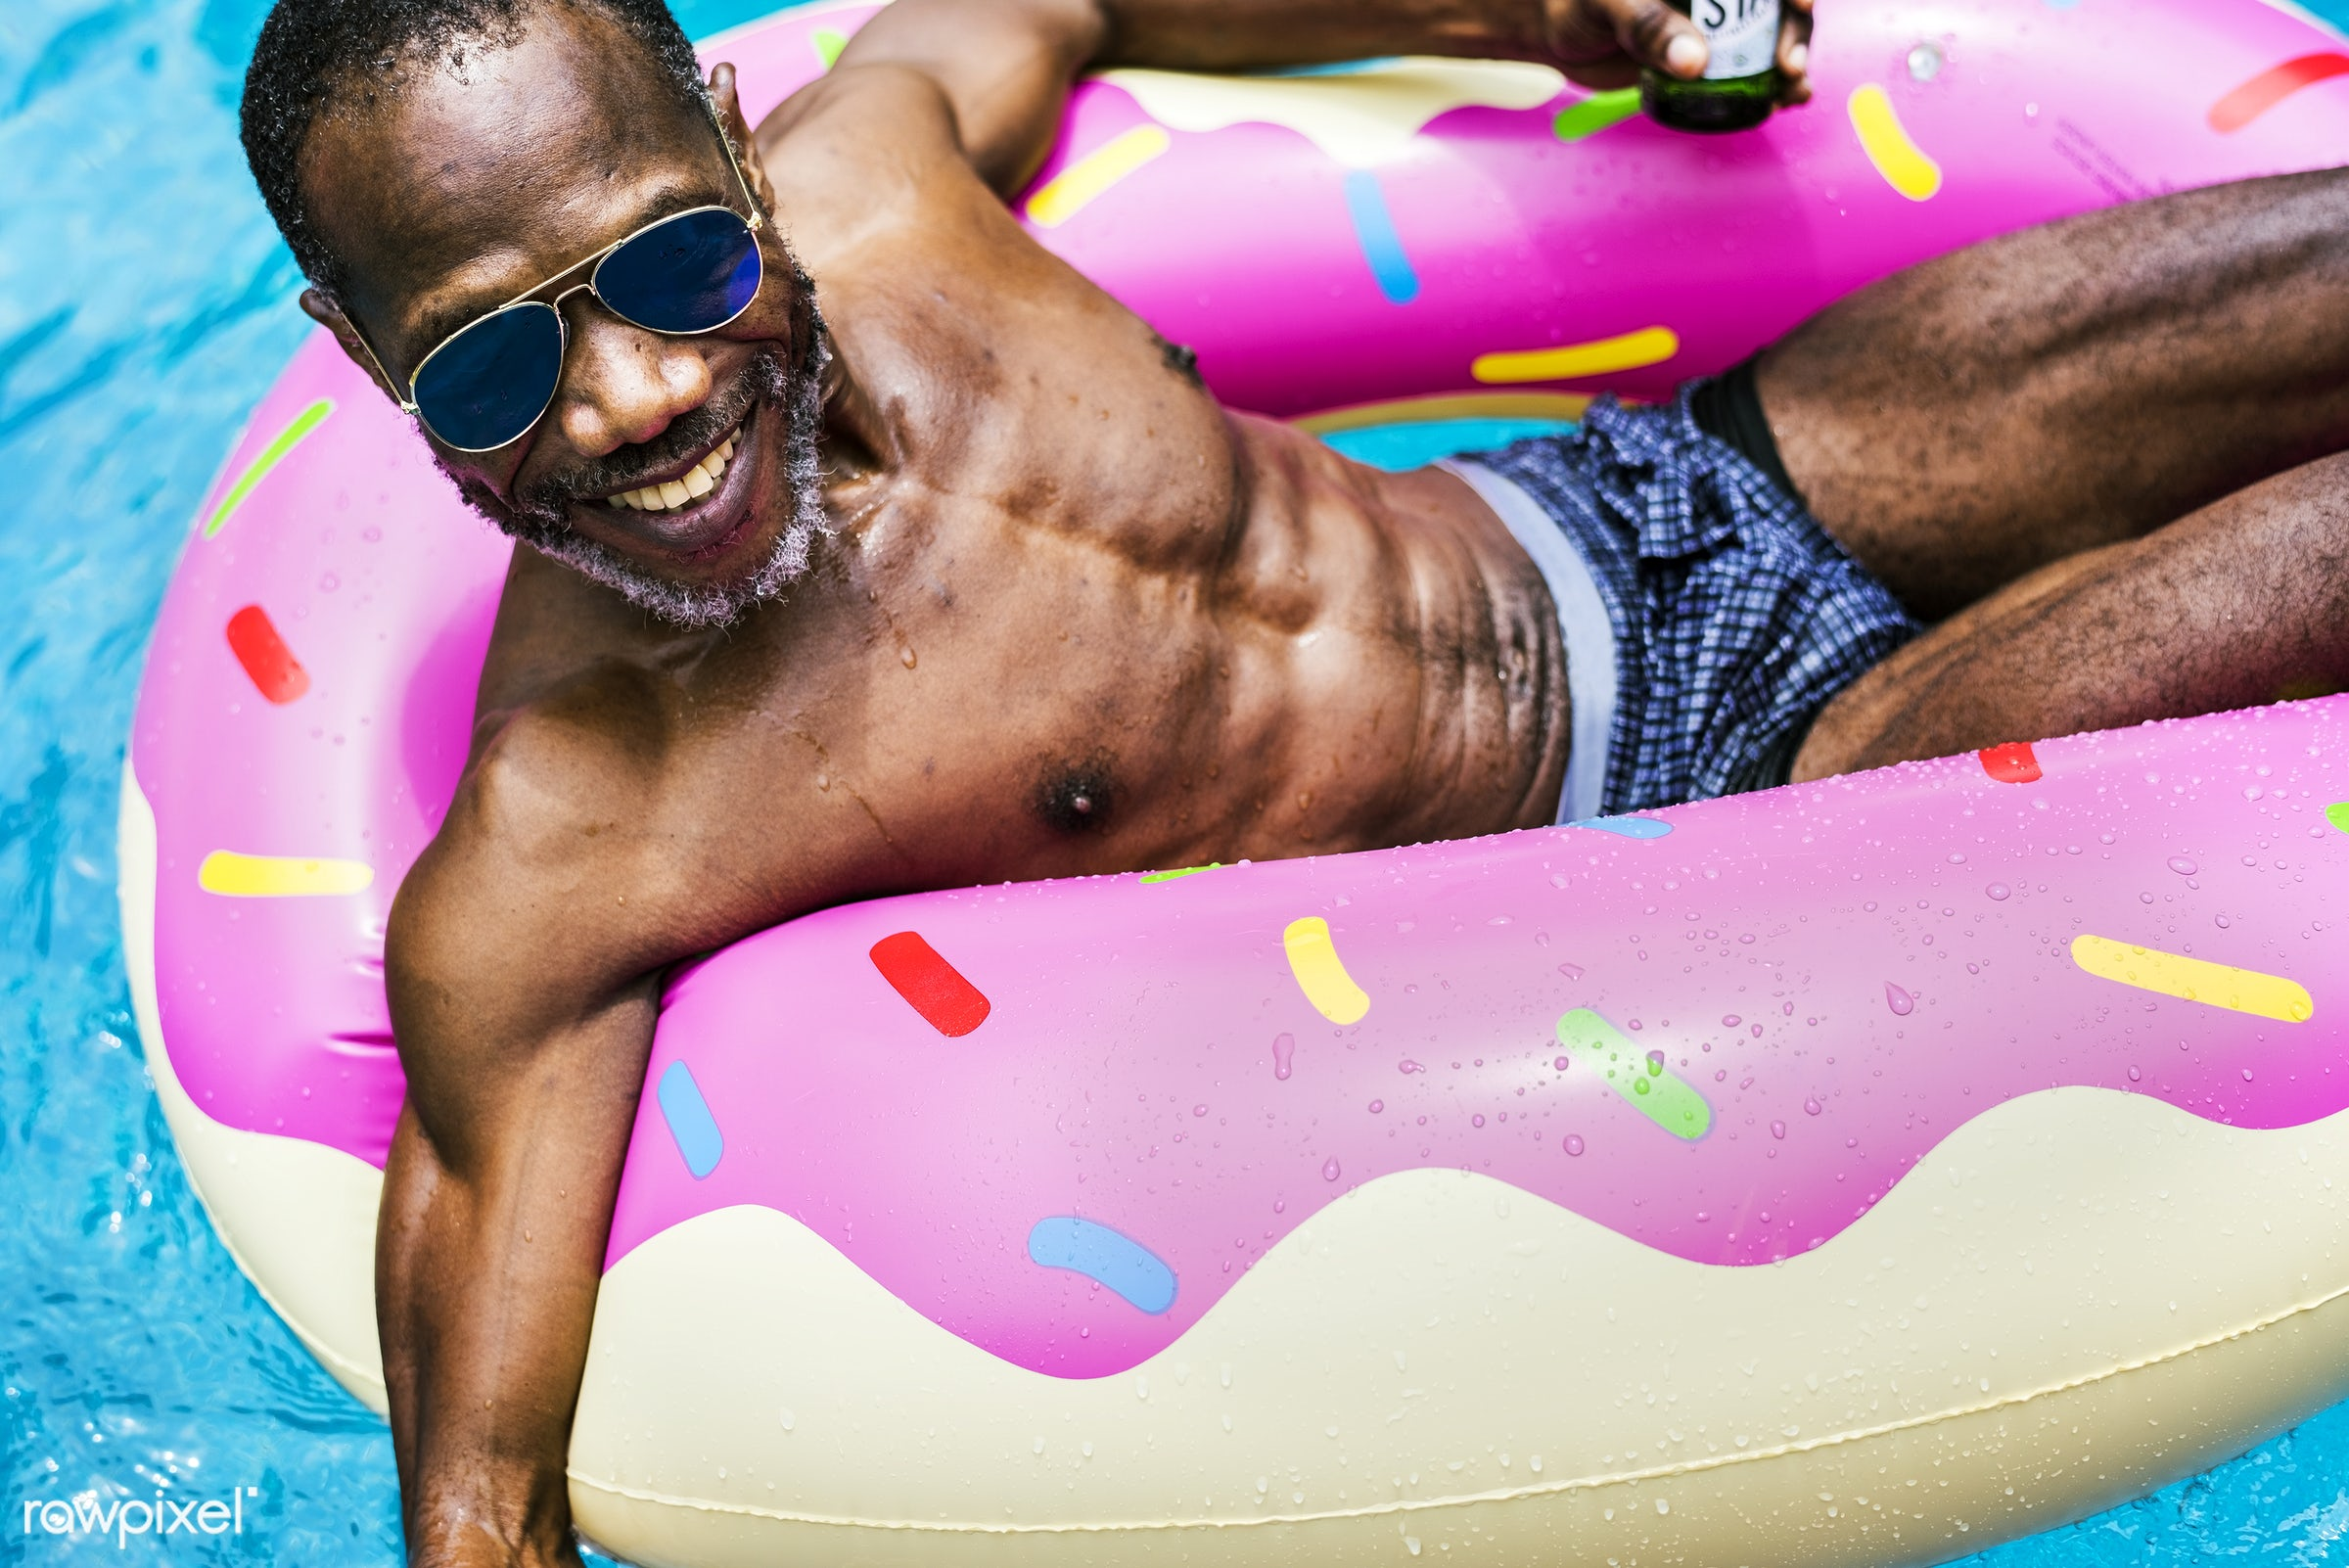 tube, relax, swimming pool, recreation, party, pool, alone, cheerful, smiling, black, closeup, man, african descent, leisure...